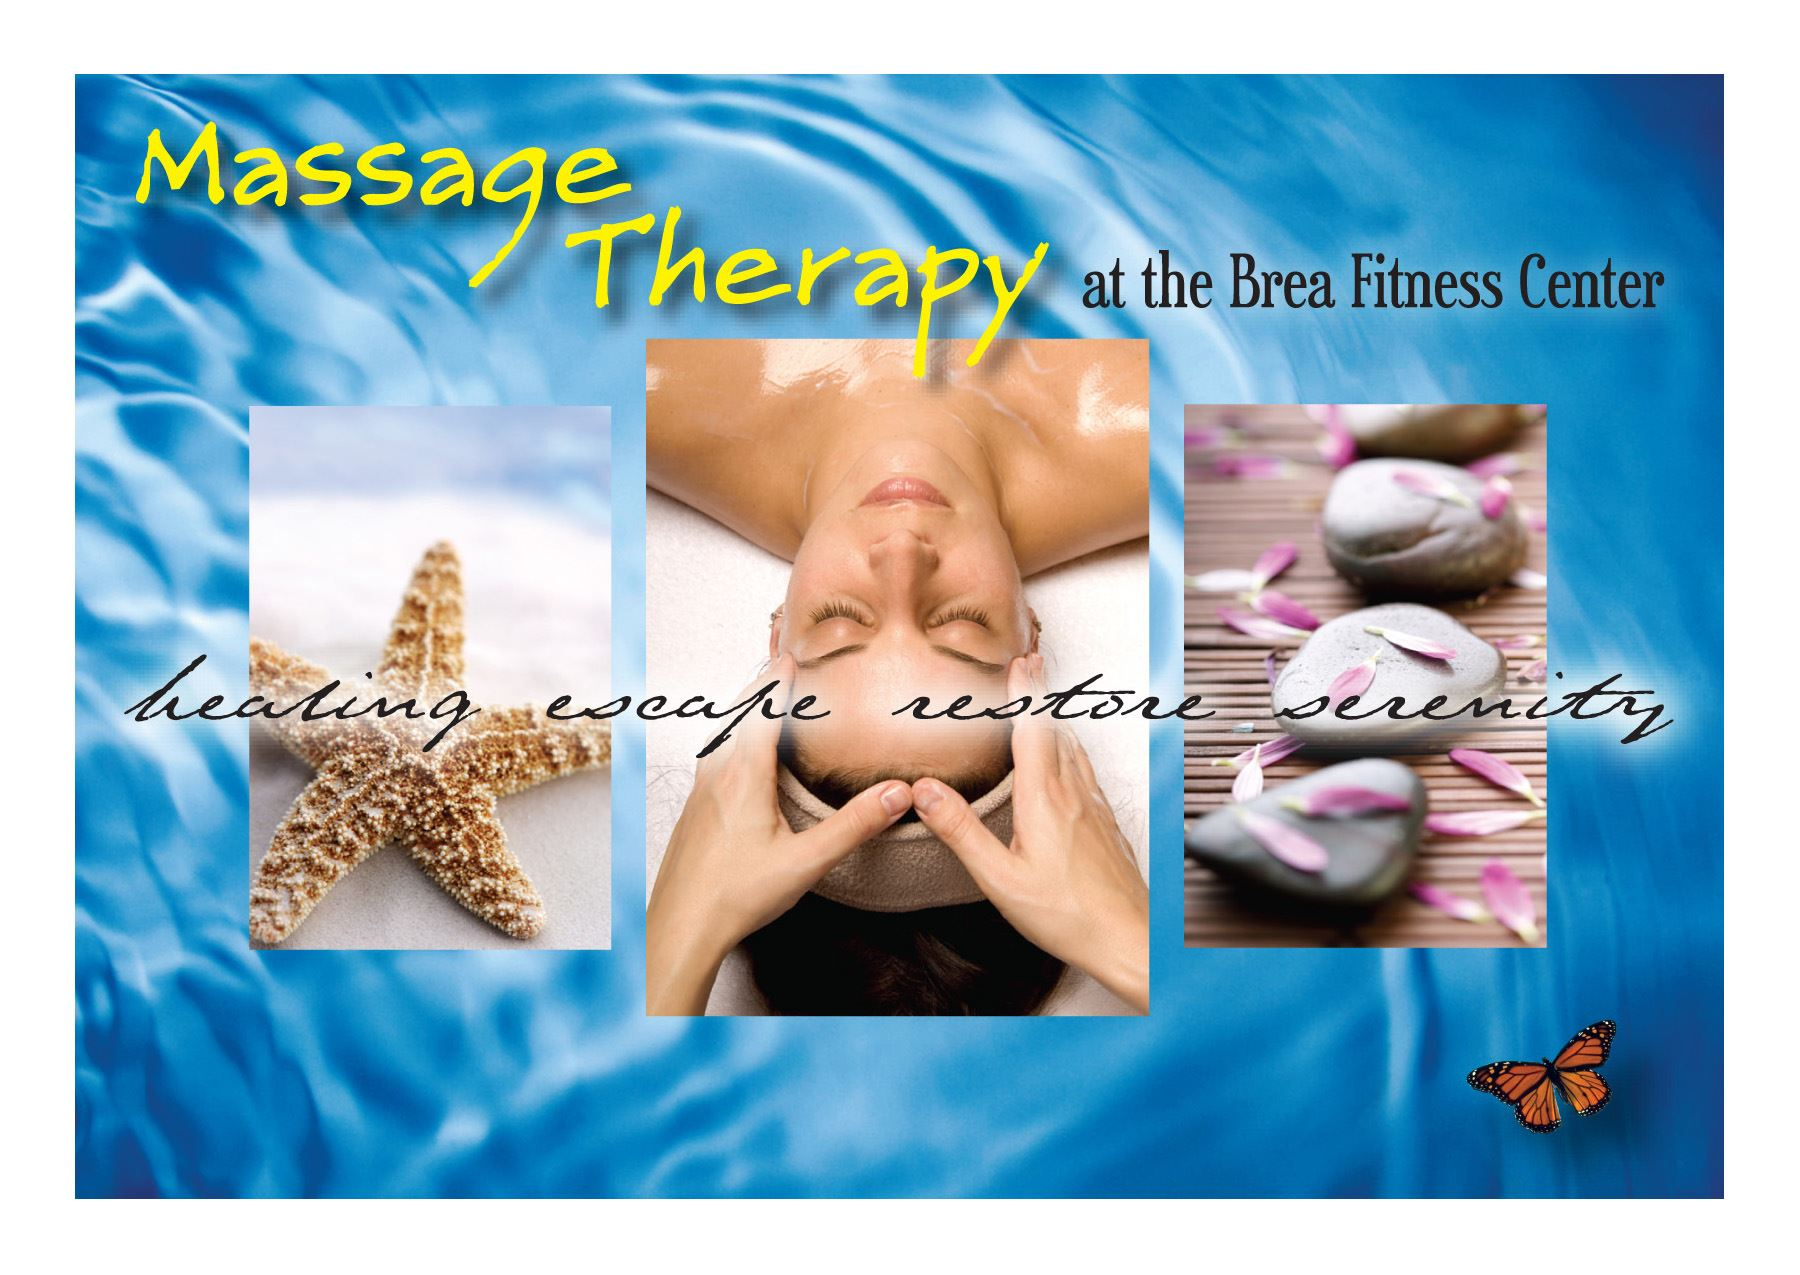 massage therapy high res photo